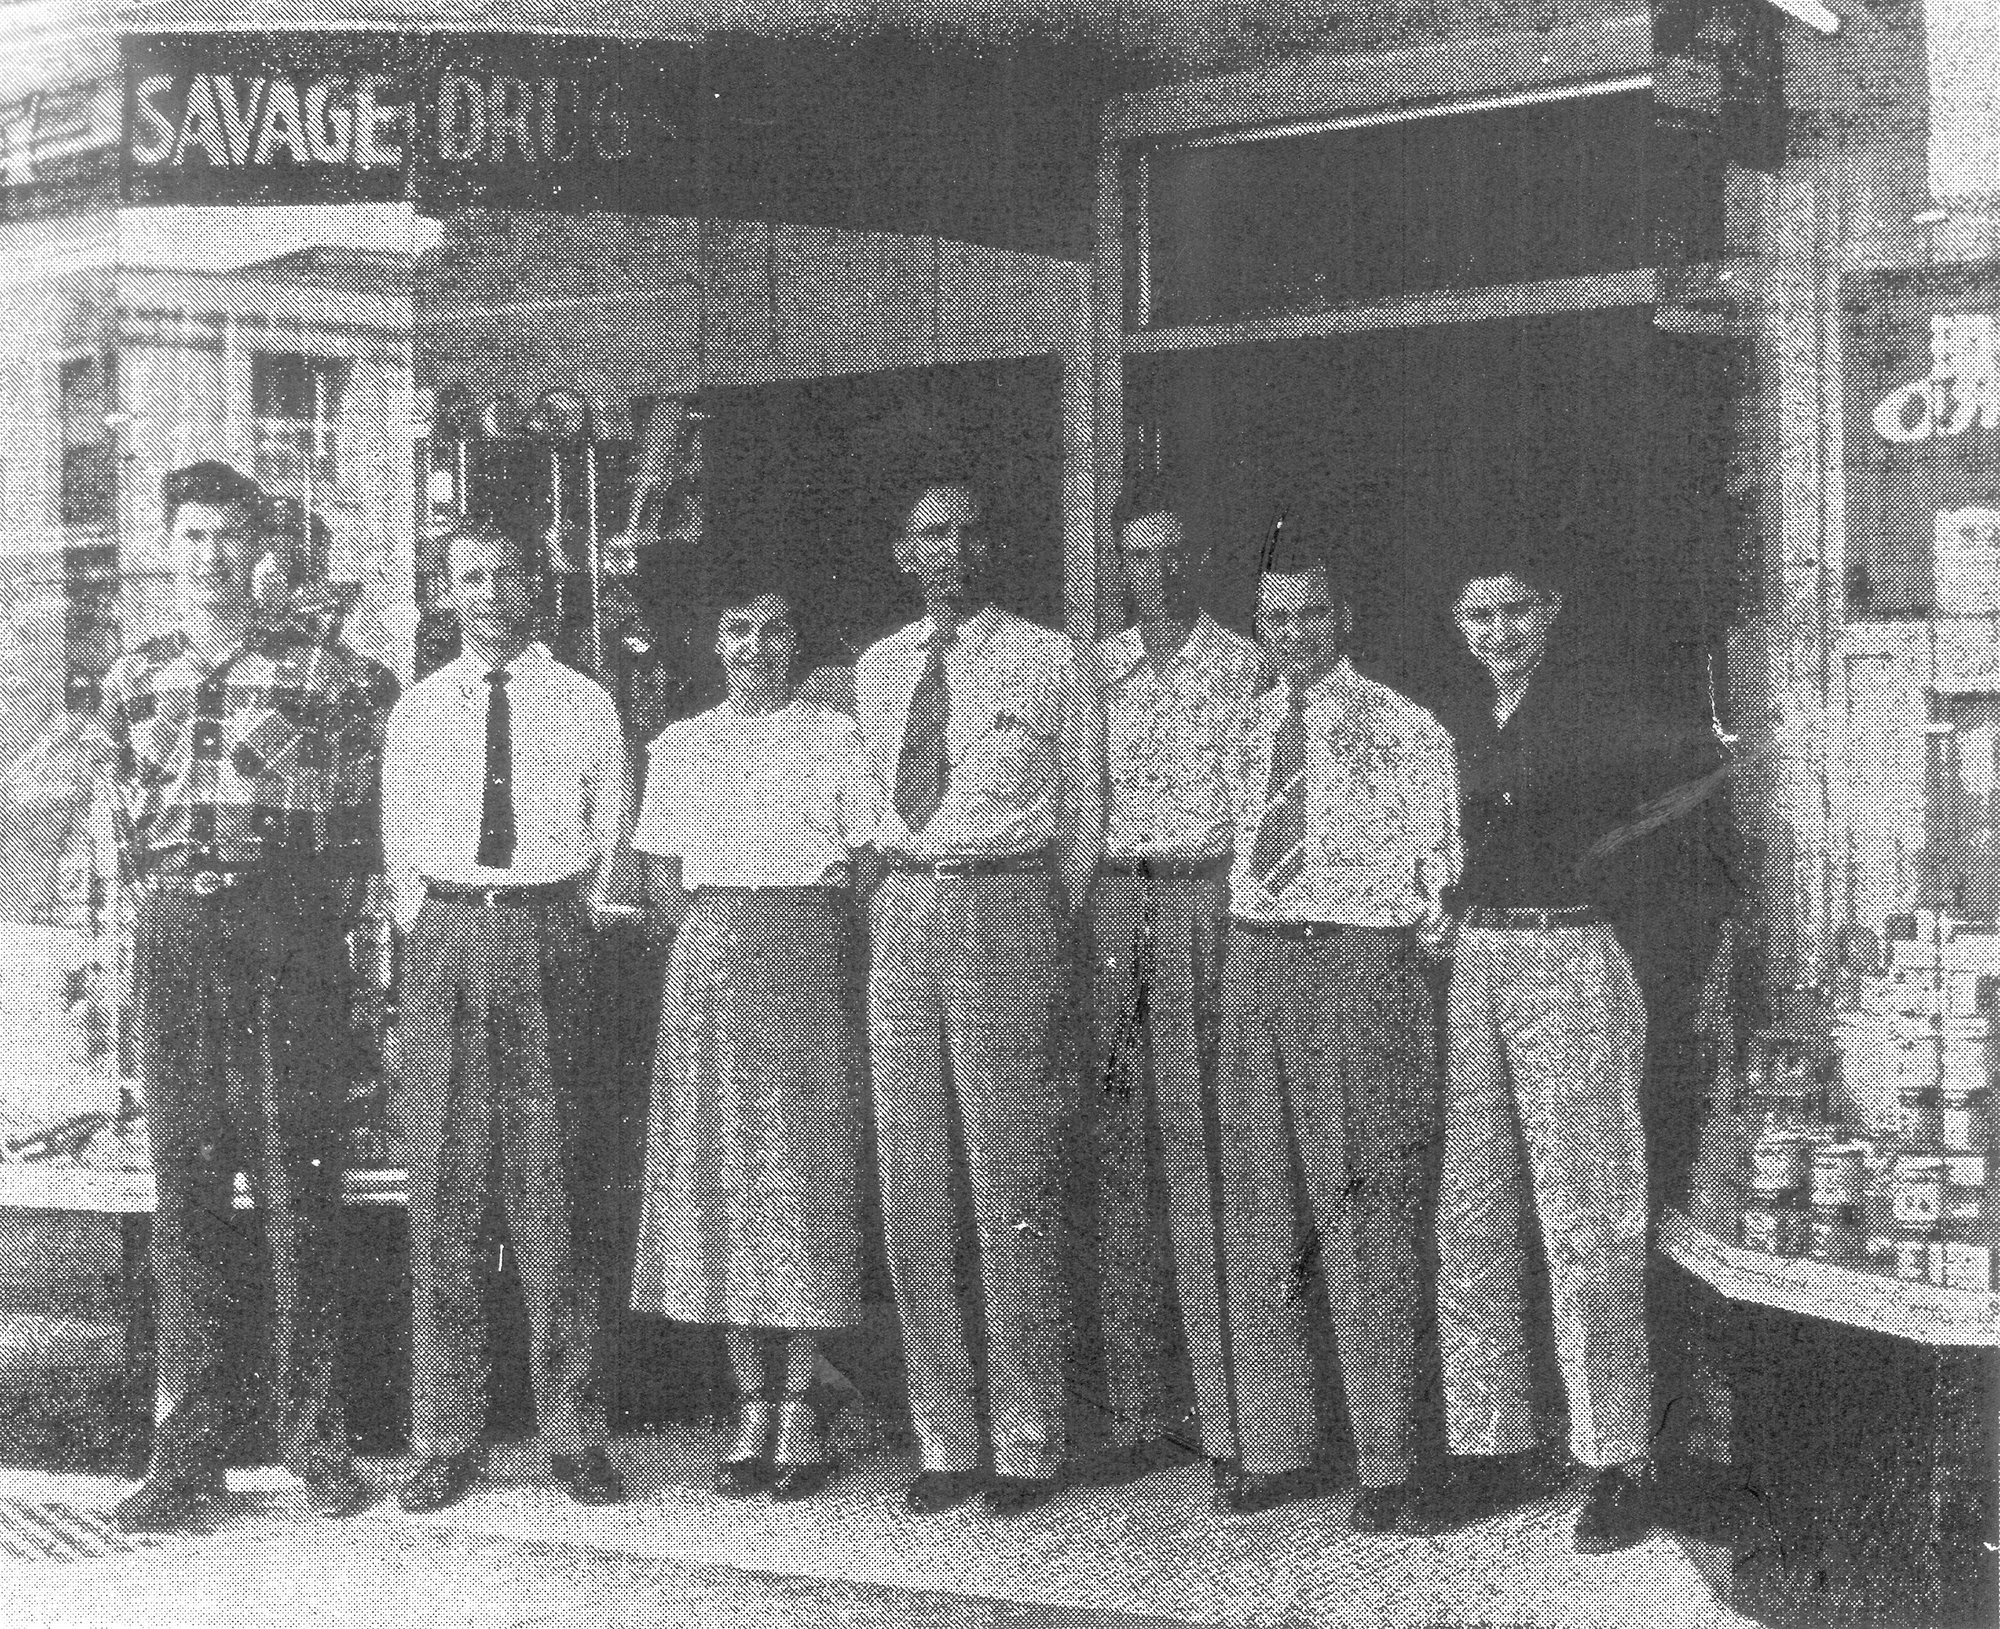 Savage Drug Store was owned by Clyde W. Savage and sold all manner of sundries in addition to prescriptions and hospital supplies.